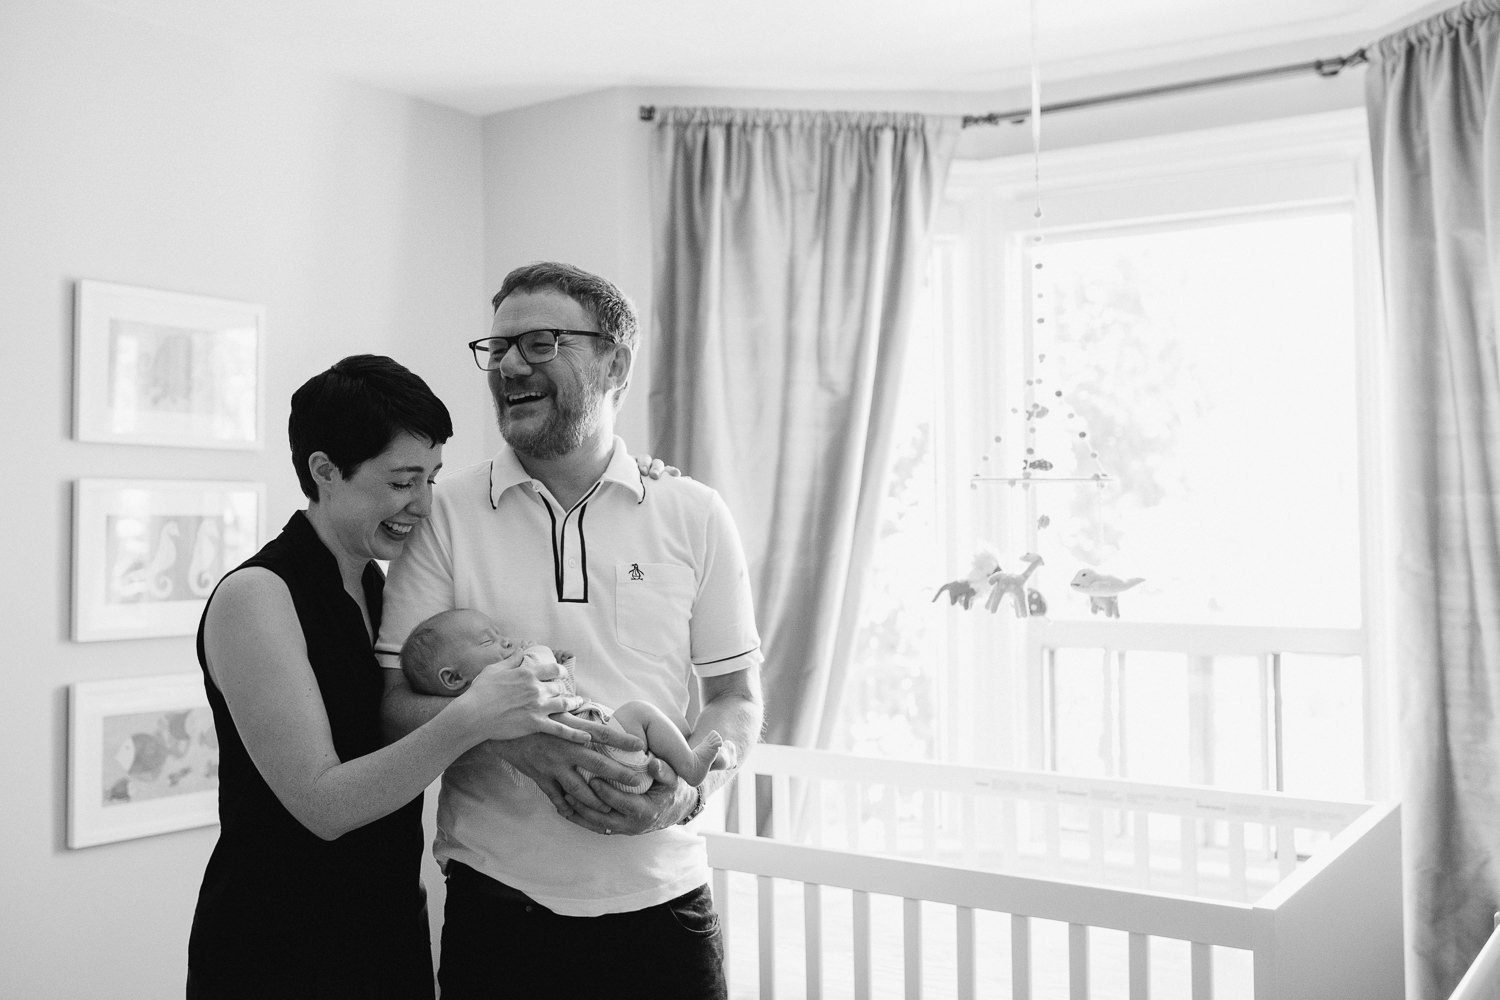 first time parents standing and laughing in nursery, dad holding 2 week old baby boy - Markham In-Home Photography